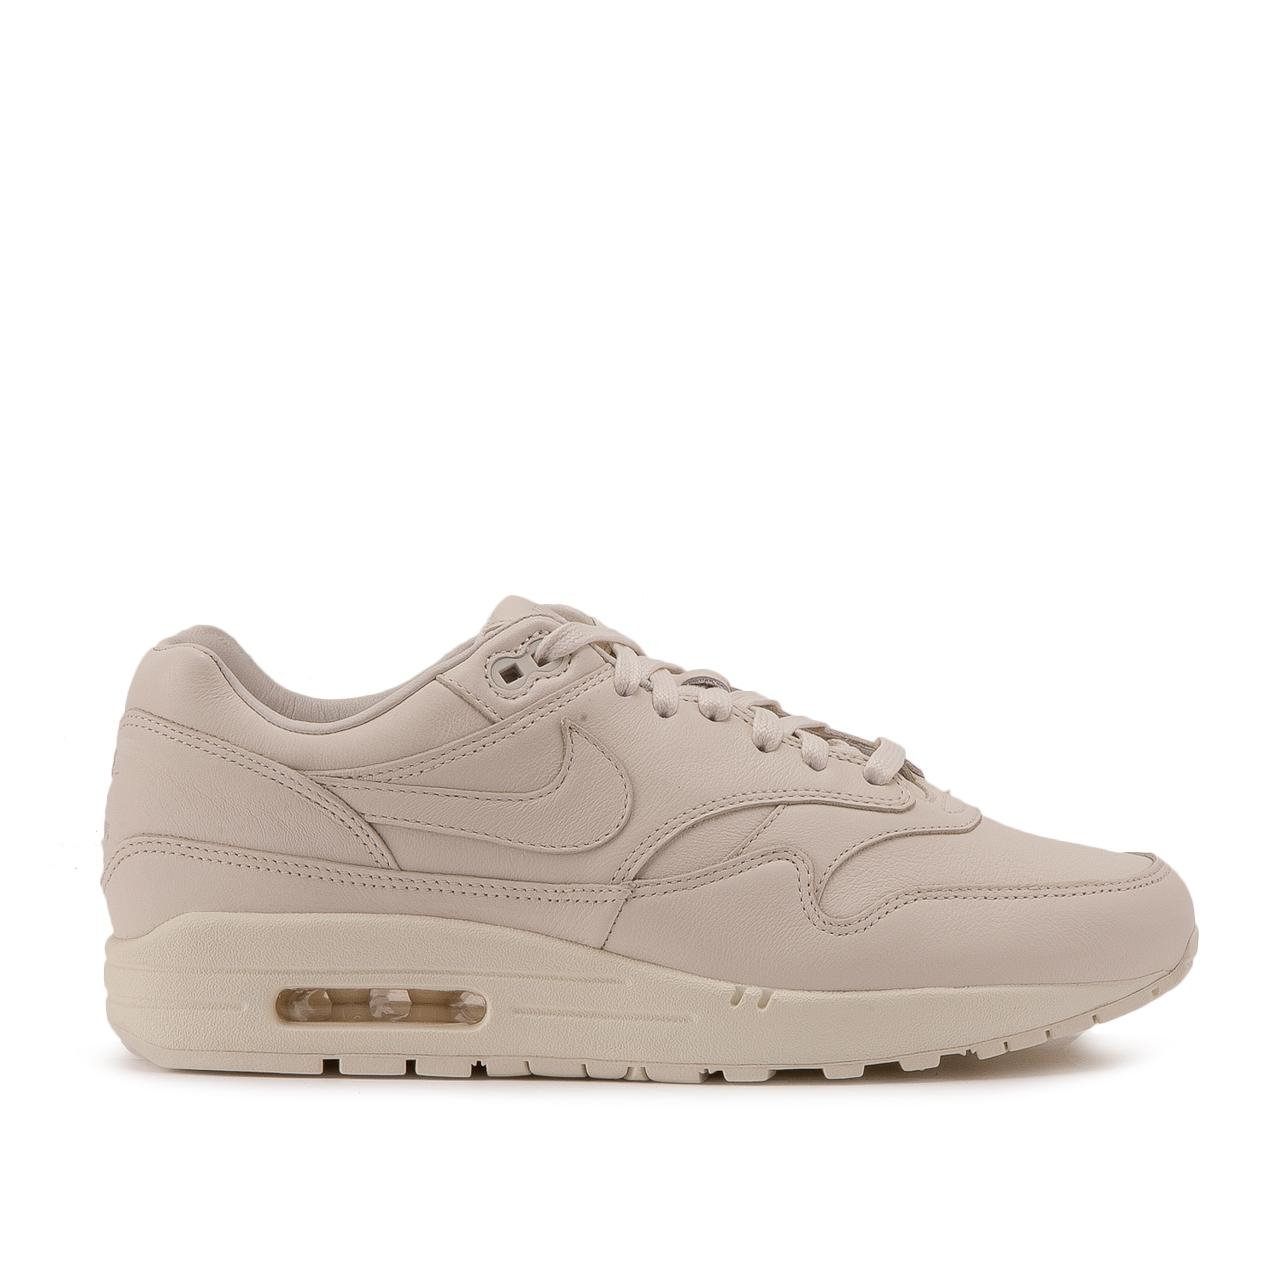 Nike Leather Nike Air Max 1 Pinnacle in White for Men - Lyst